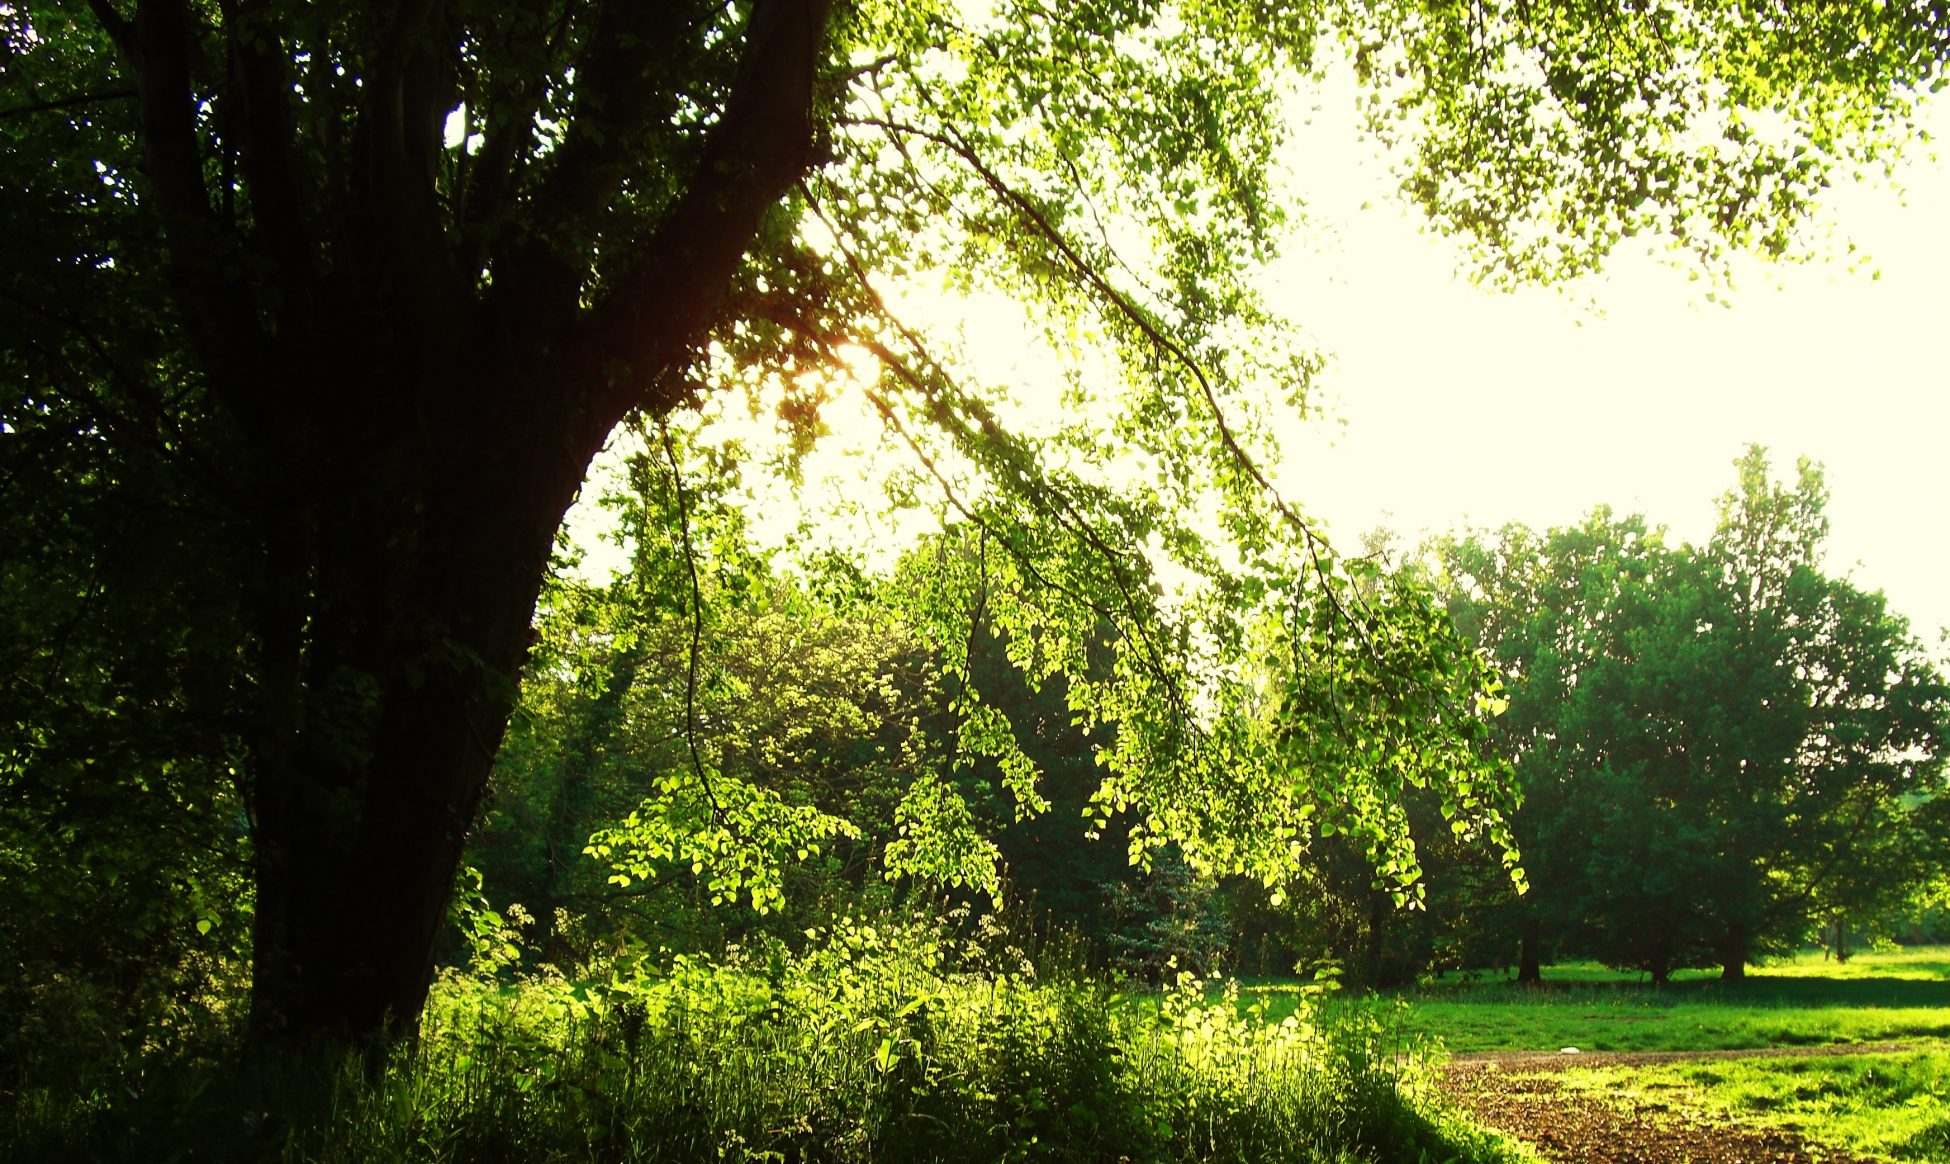 Photo of a meadow with a tree with low branches. The sun is shining through the branches